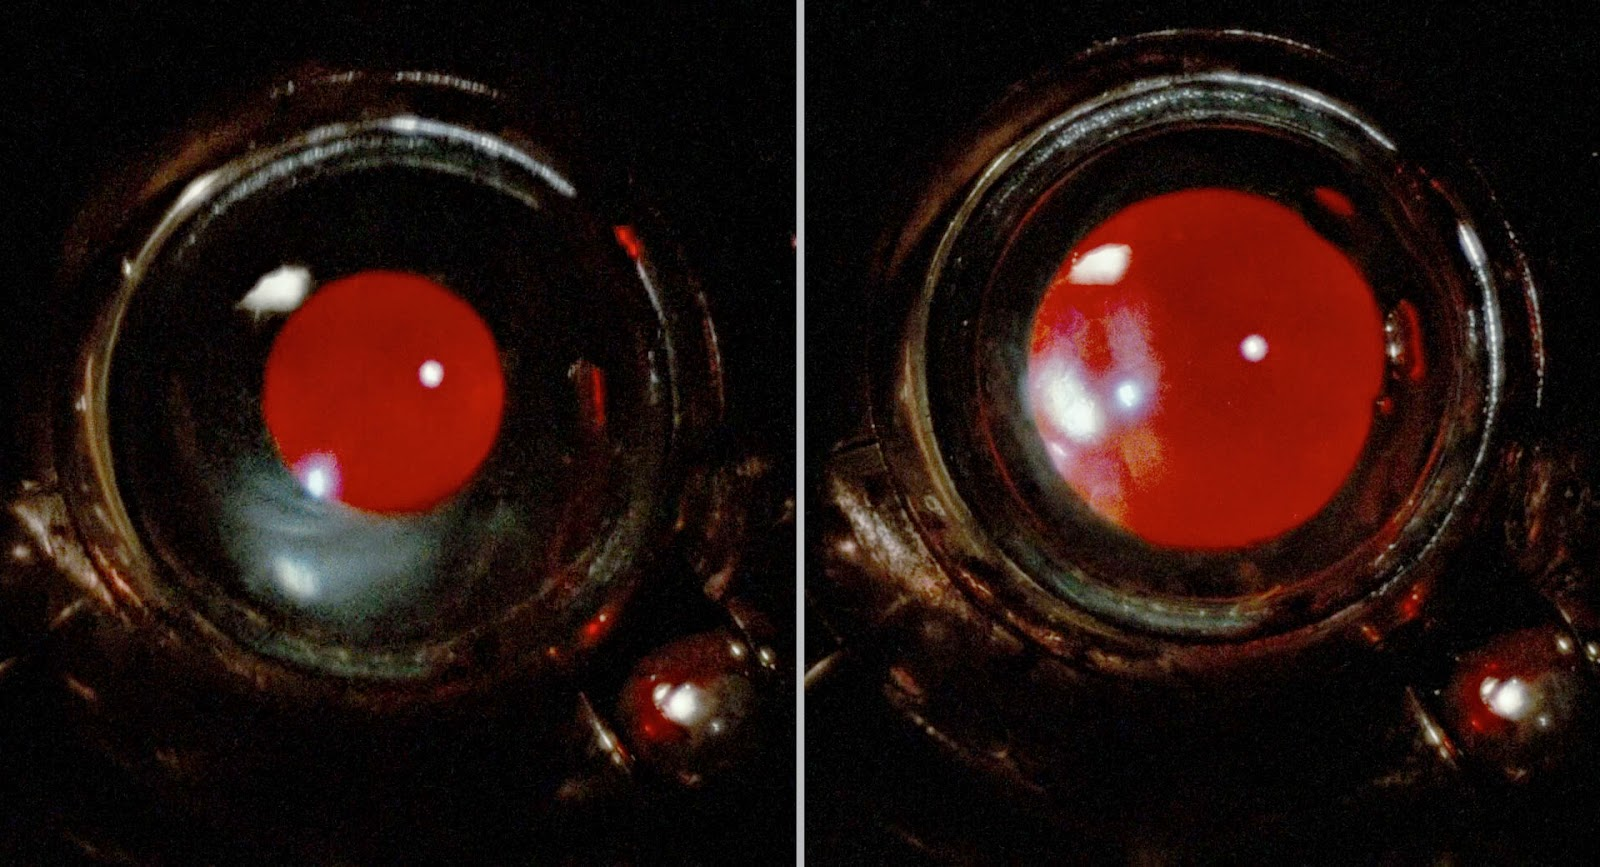 T800-101: Building a Terminator Endo Skull: RESEARCH - EYES